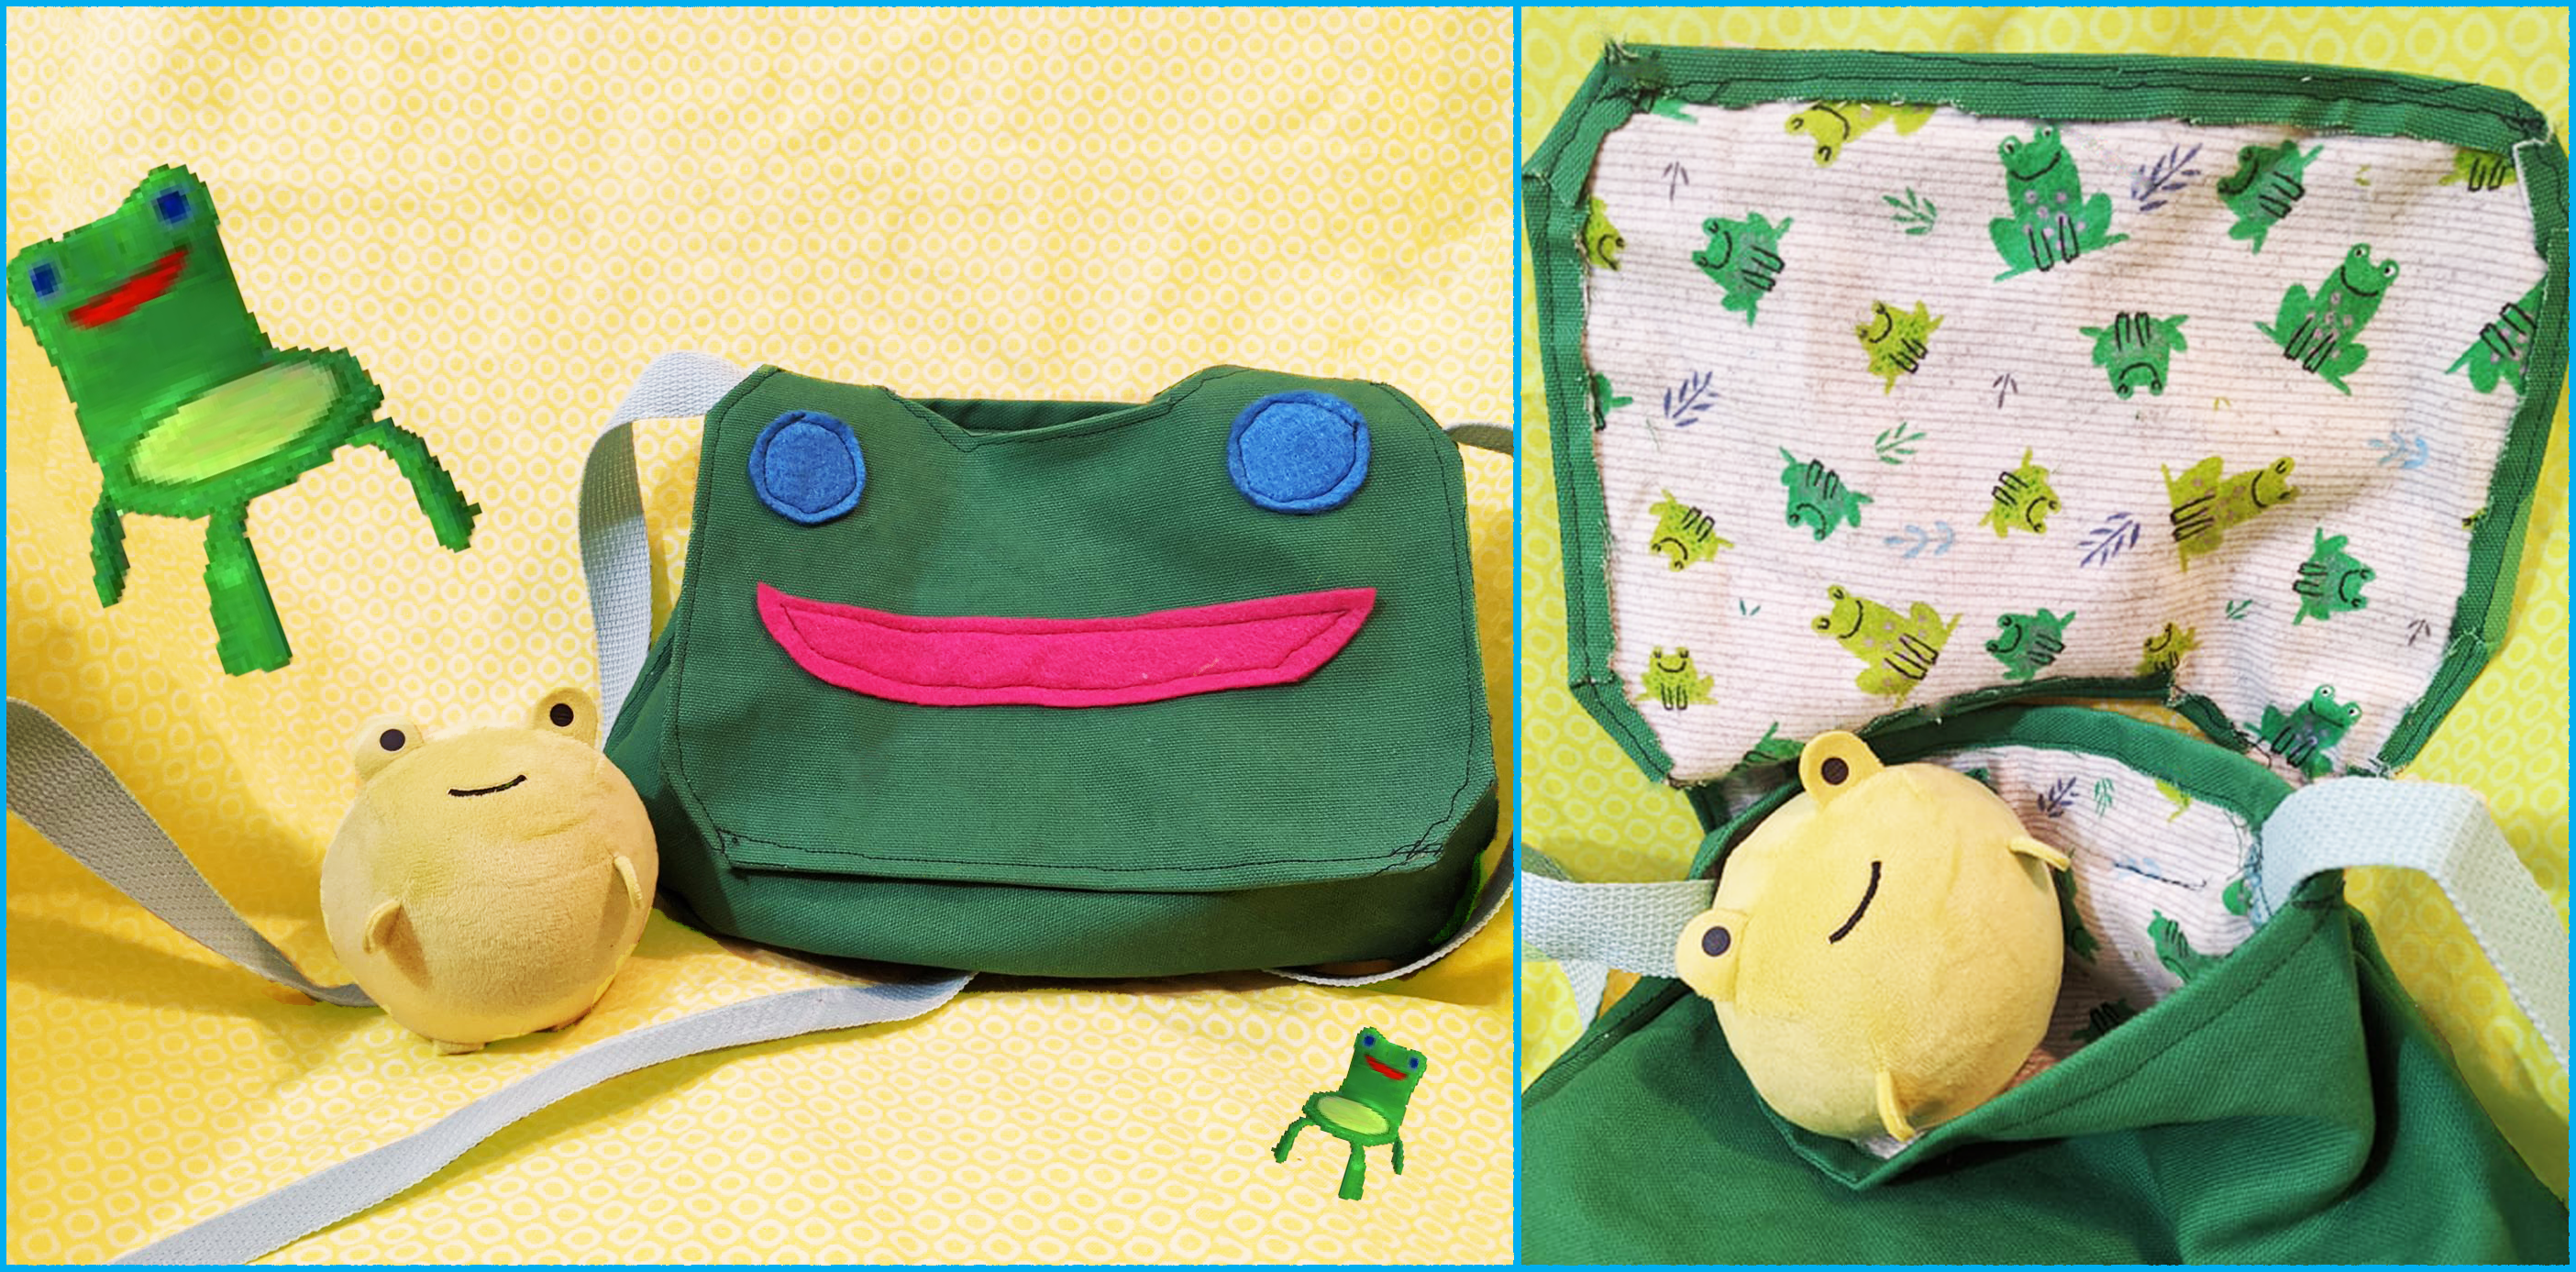 For My Second Sewing Project I Made An Animal Crossing Froggy